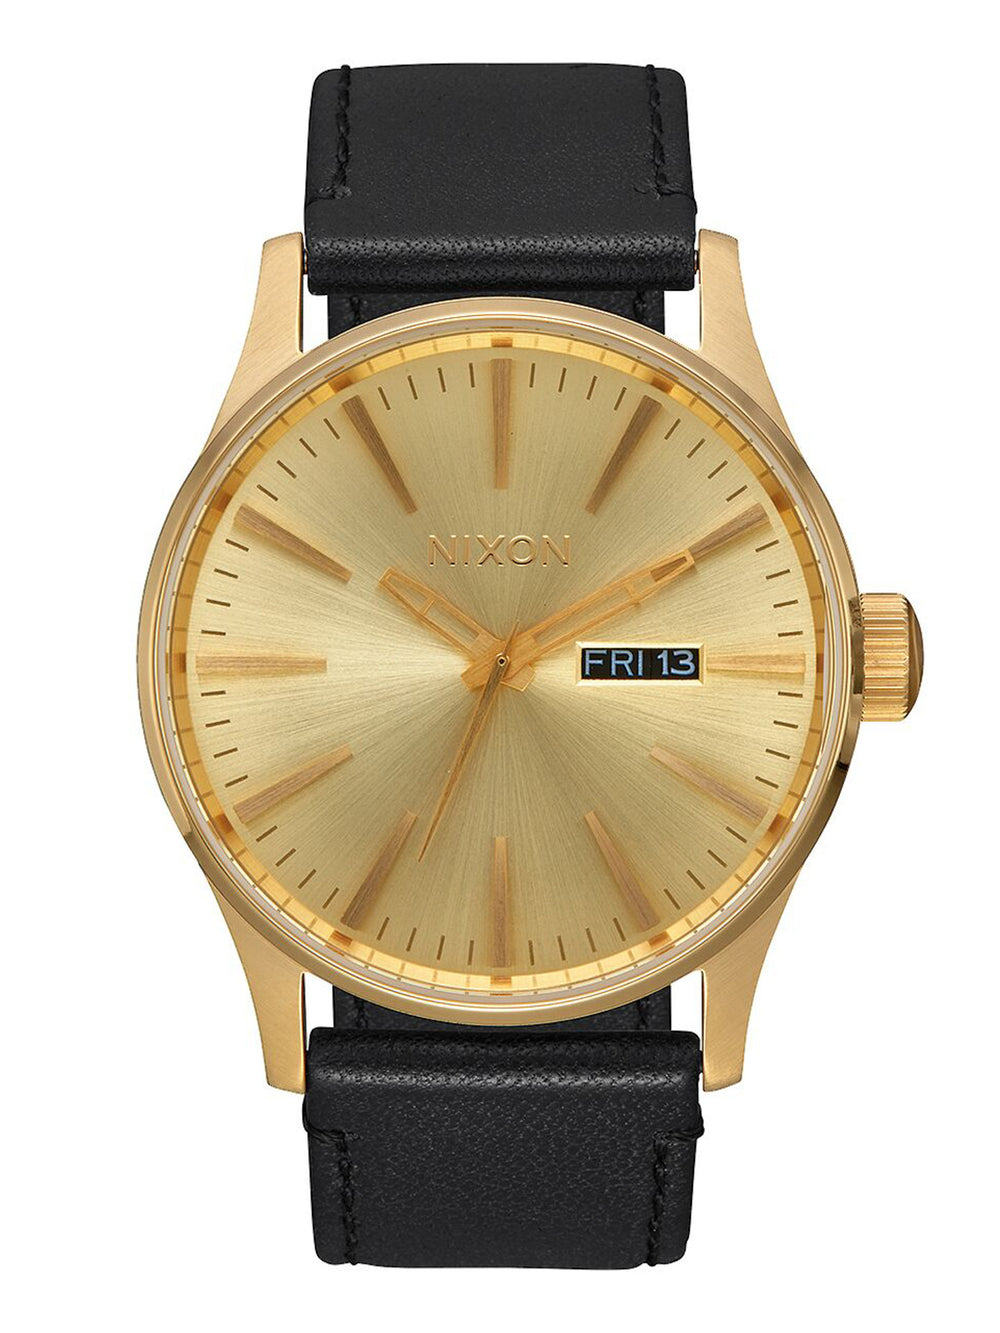 MENS SENTRY LEATHER - ALL GOLD/BLACK WATCH